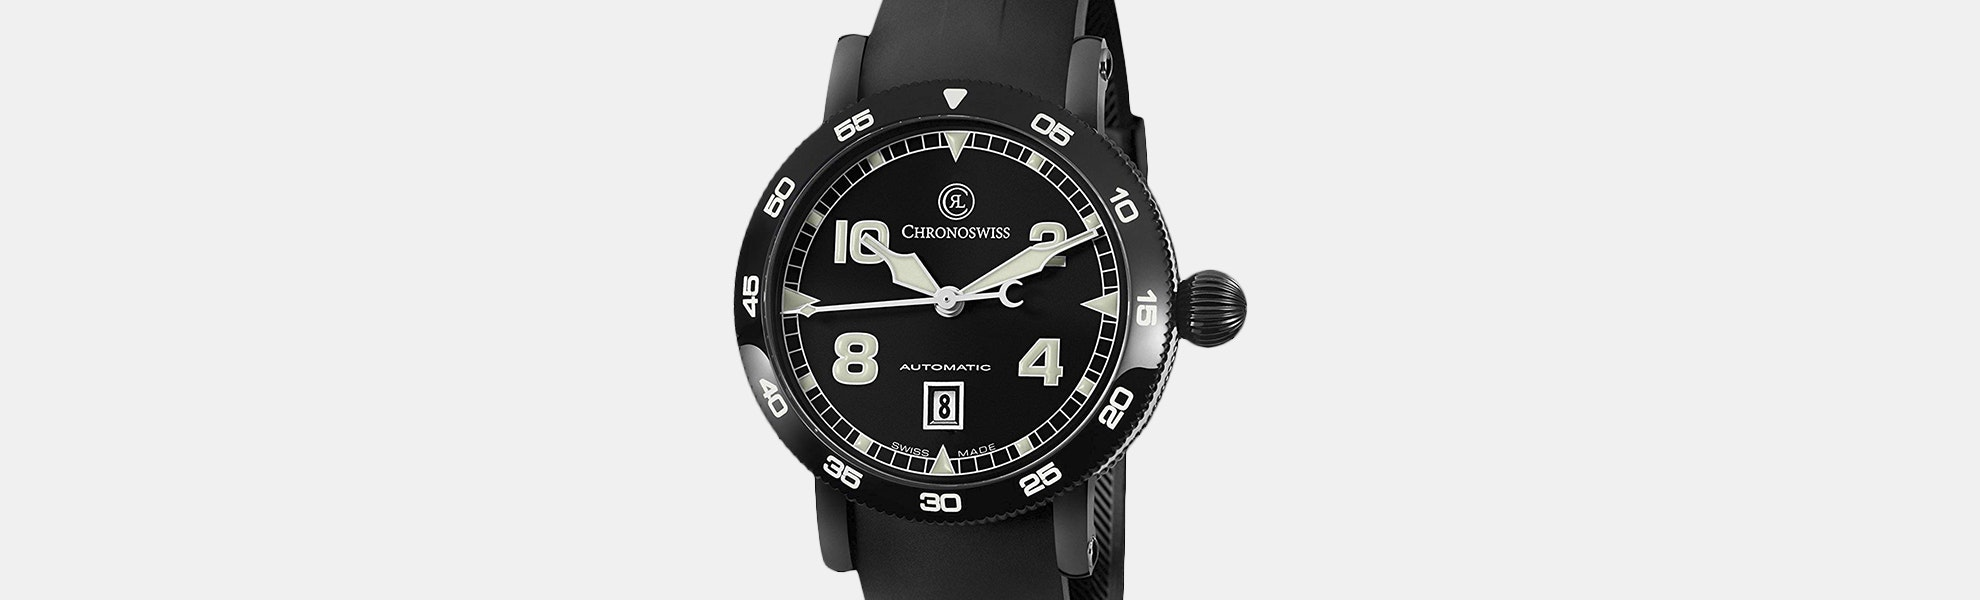 Chronoswiss Timemaster Automatic Watch